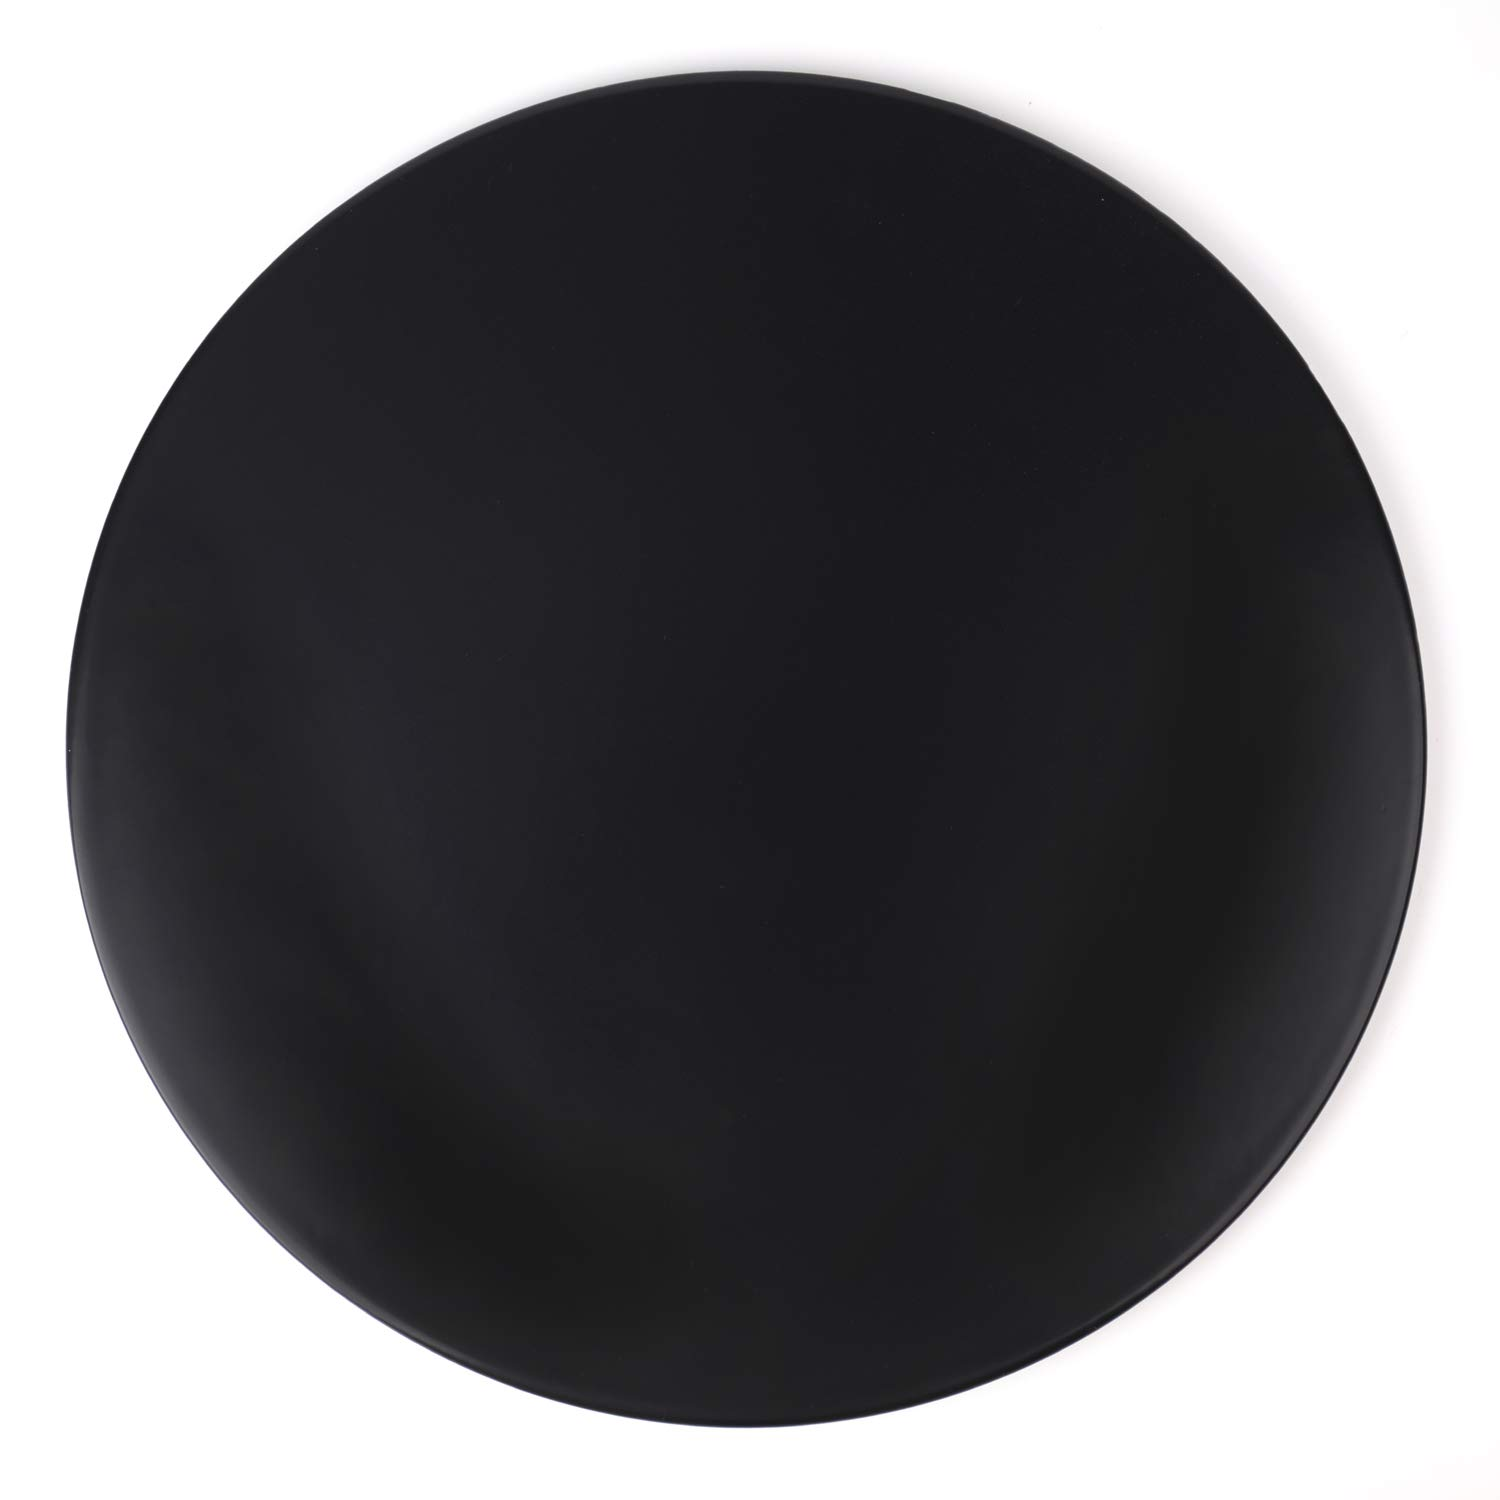 Yesland 13 Inch Ceramic Glazed Cordierite Pizza Stone, Black, for Oven, BBQ, Pies, Pastry Bread, Calzone In kitchen or Outdoor Use